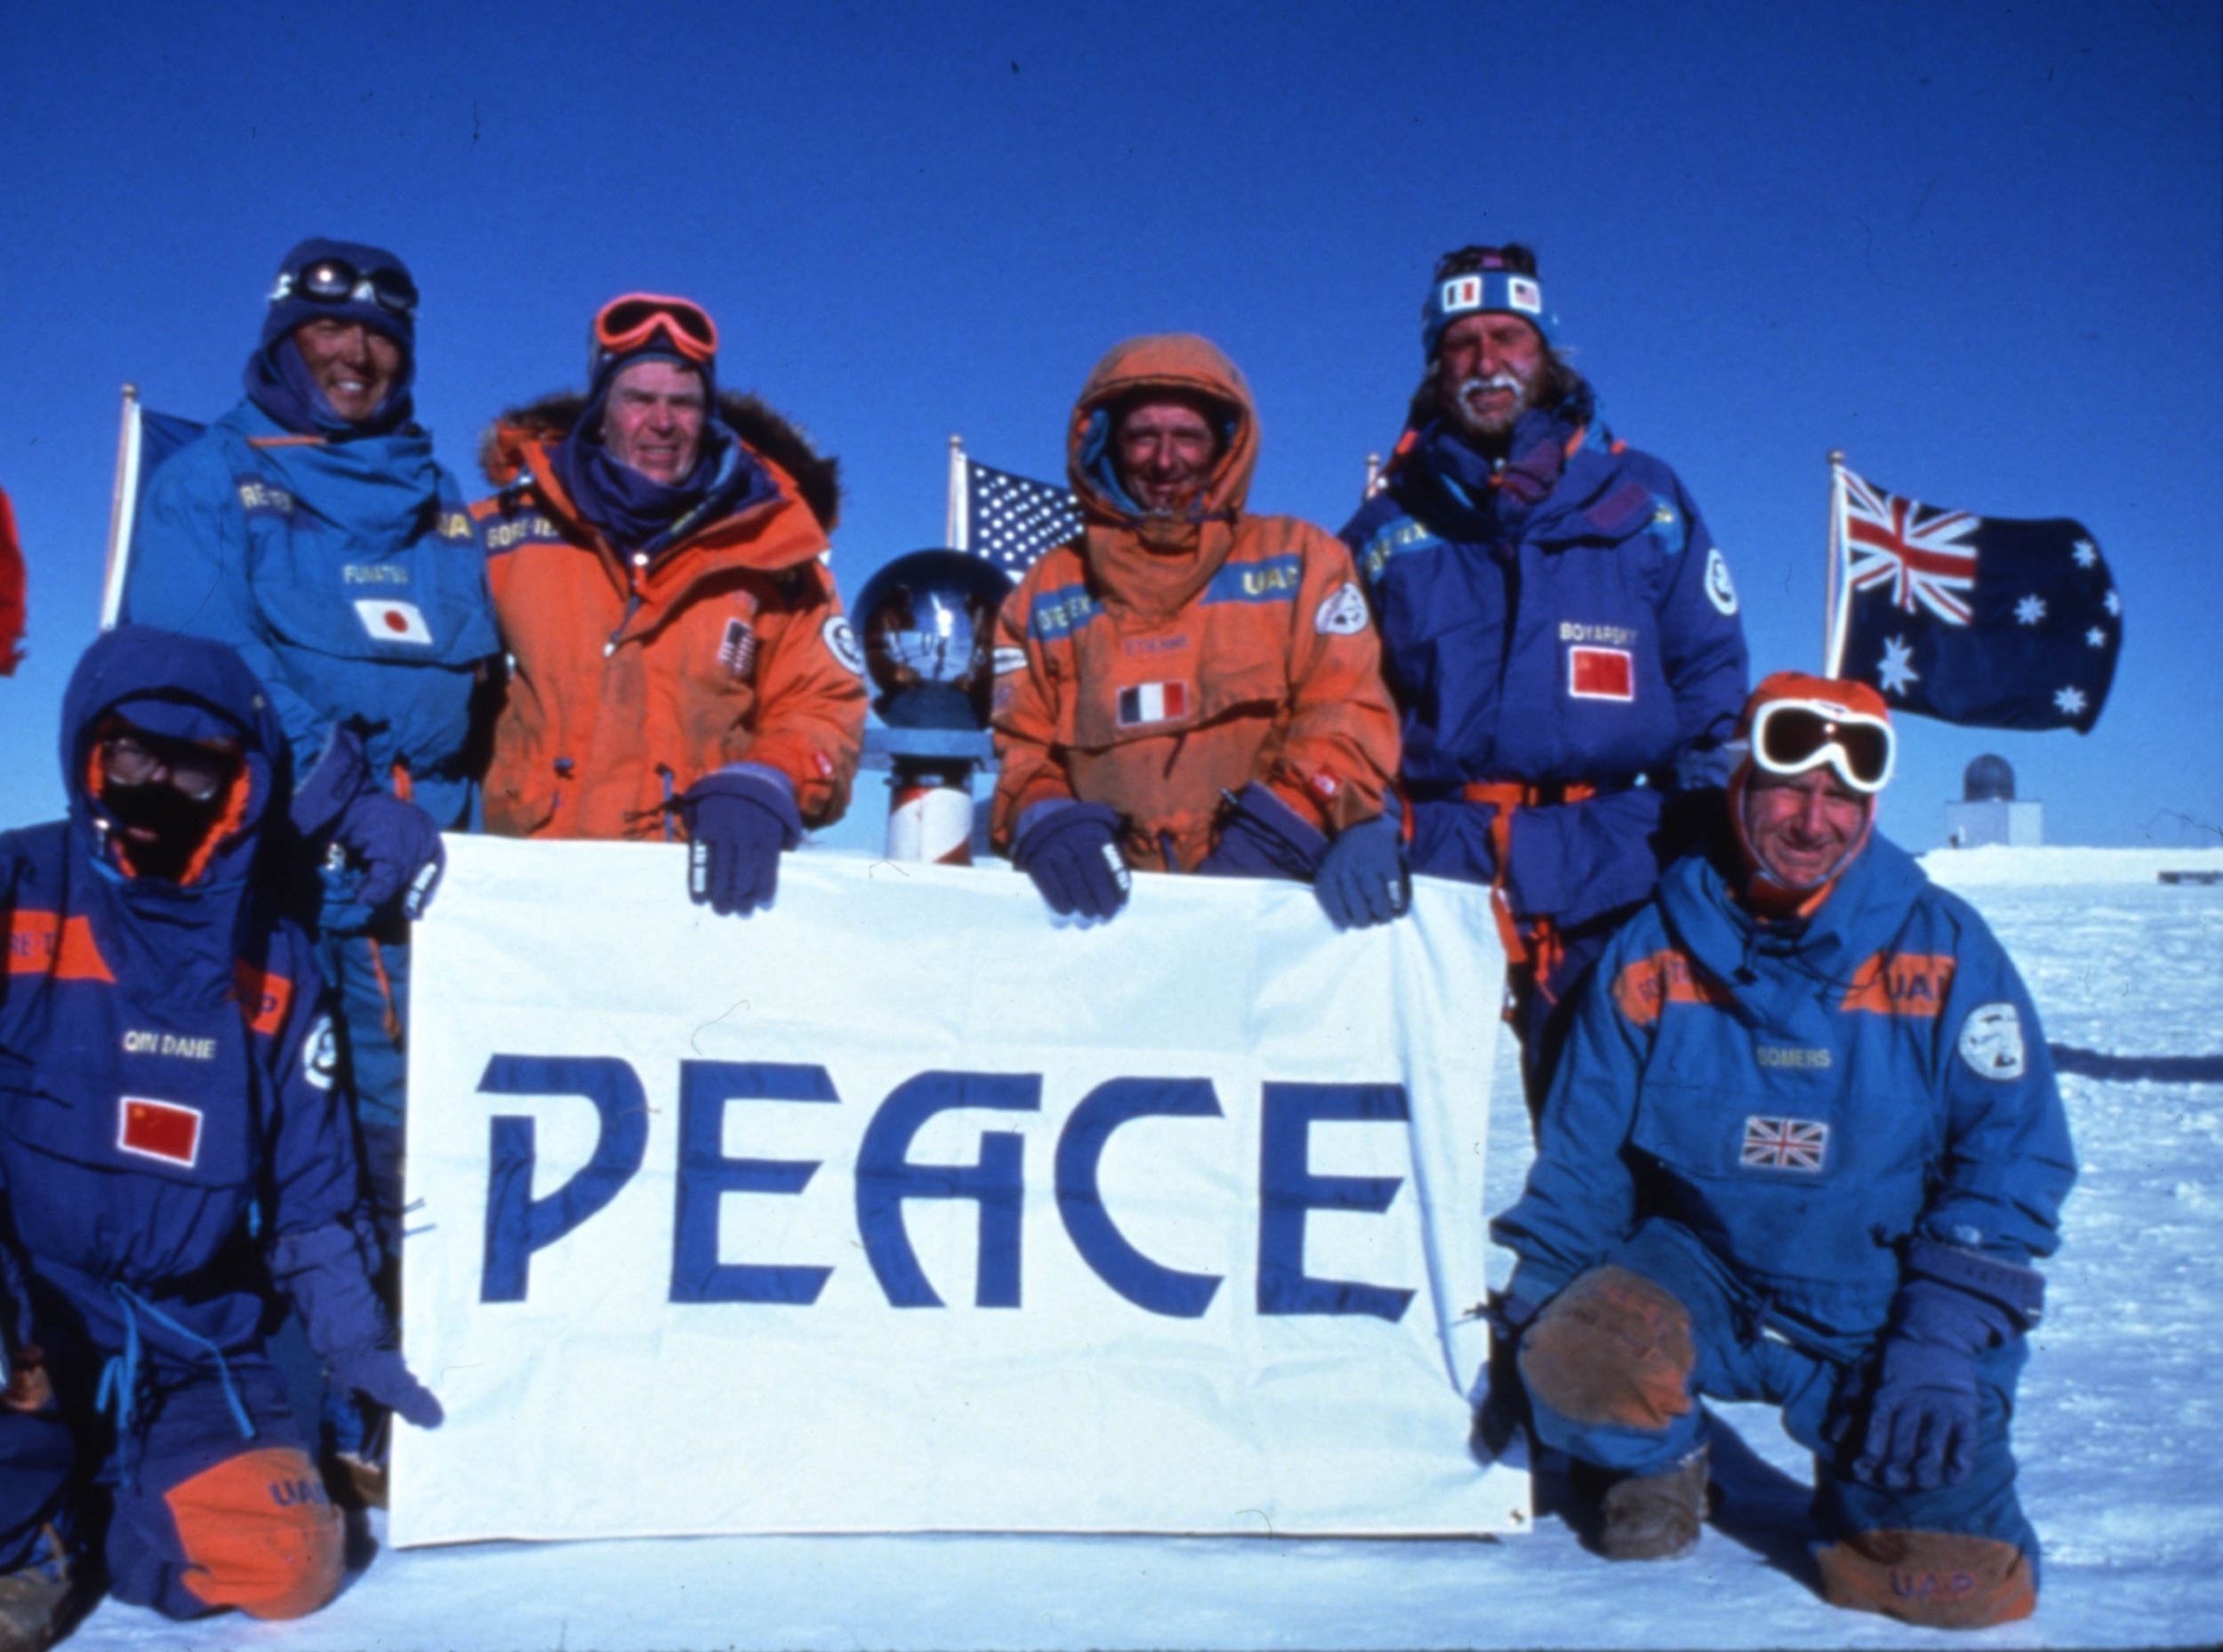 The 1990 International Trans-Antarctica Expedition sent a message to world leaders from the South Pole, half way through their journey, urging renewal of the Antarctic Treaty. ©Will Steger Photo by Gordon Wiltsie